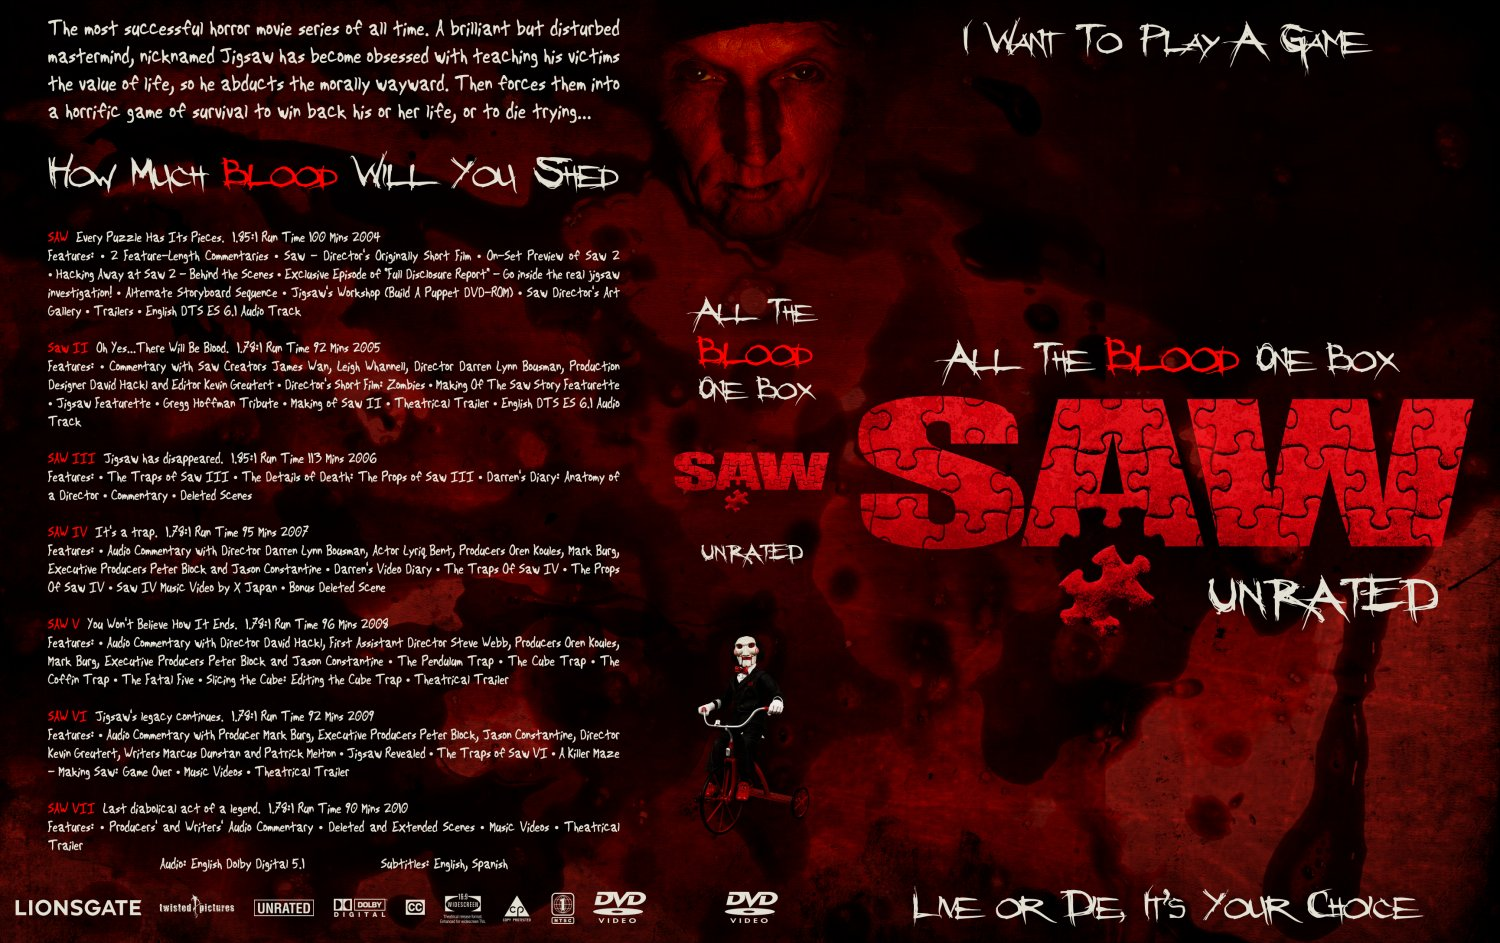 Creators of the movie saw